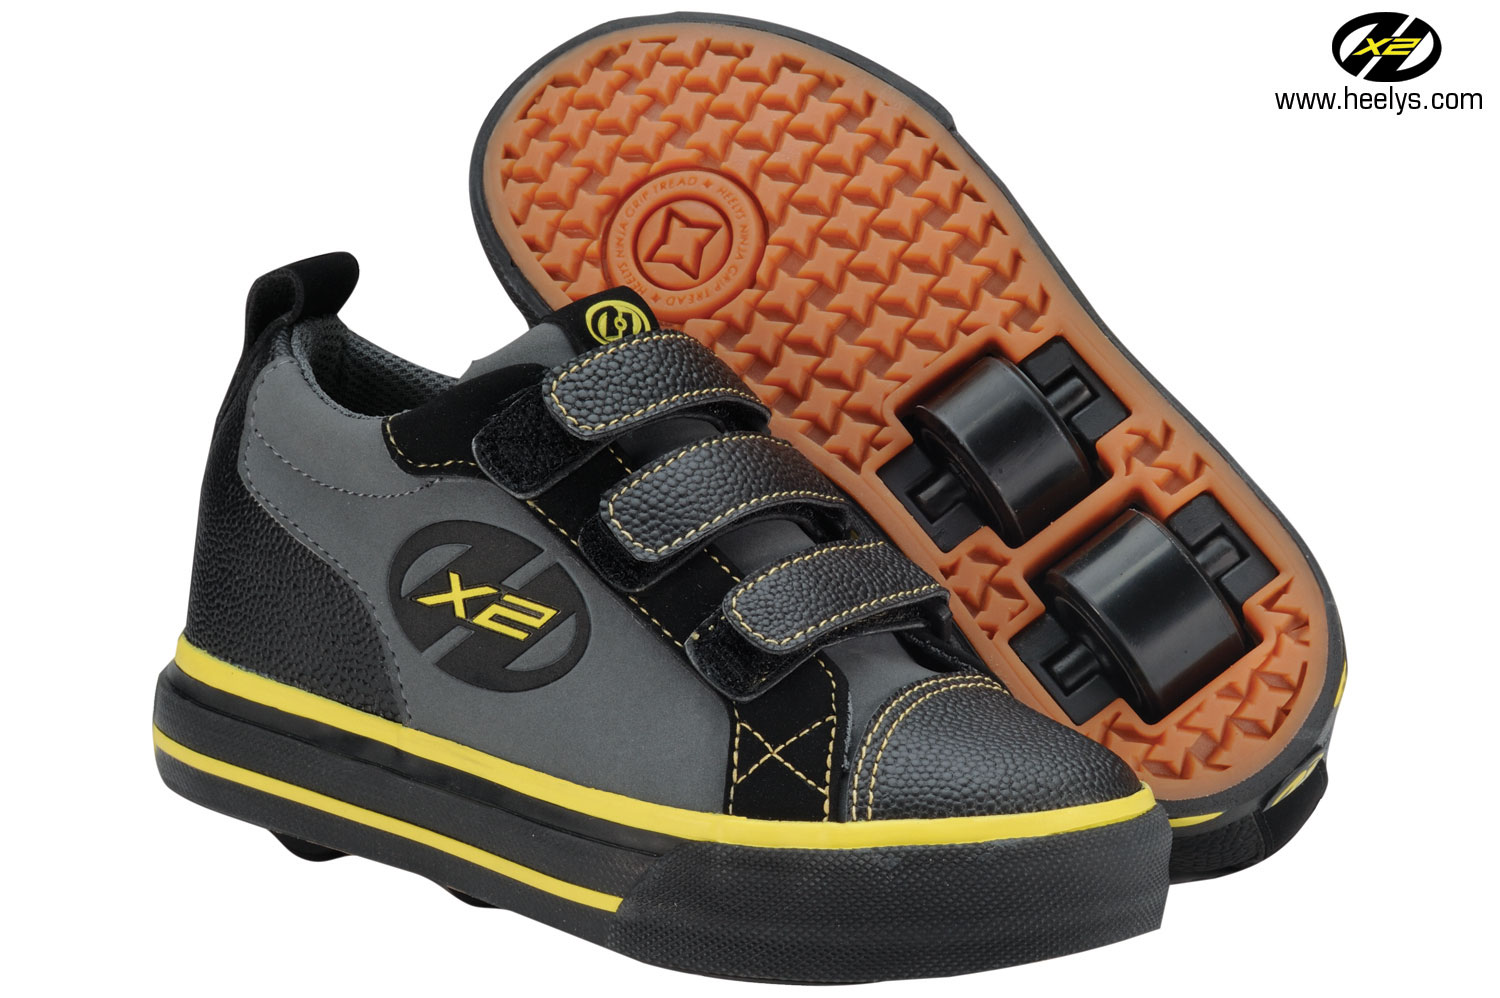 Heely skate shoes reviews - As For The Shoes Themselves They Are Really Cool They Are Actually Totally Stylish Too I Wear My Heelys Without The Wheels To The Grocery Store And